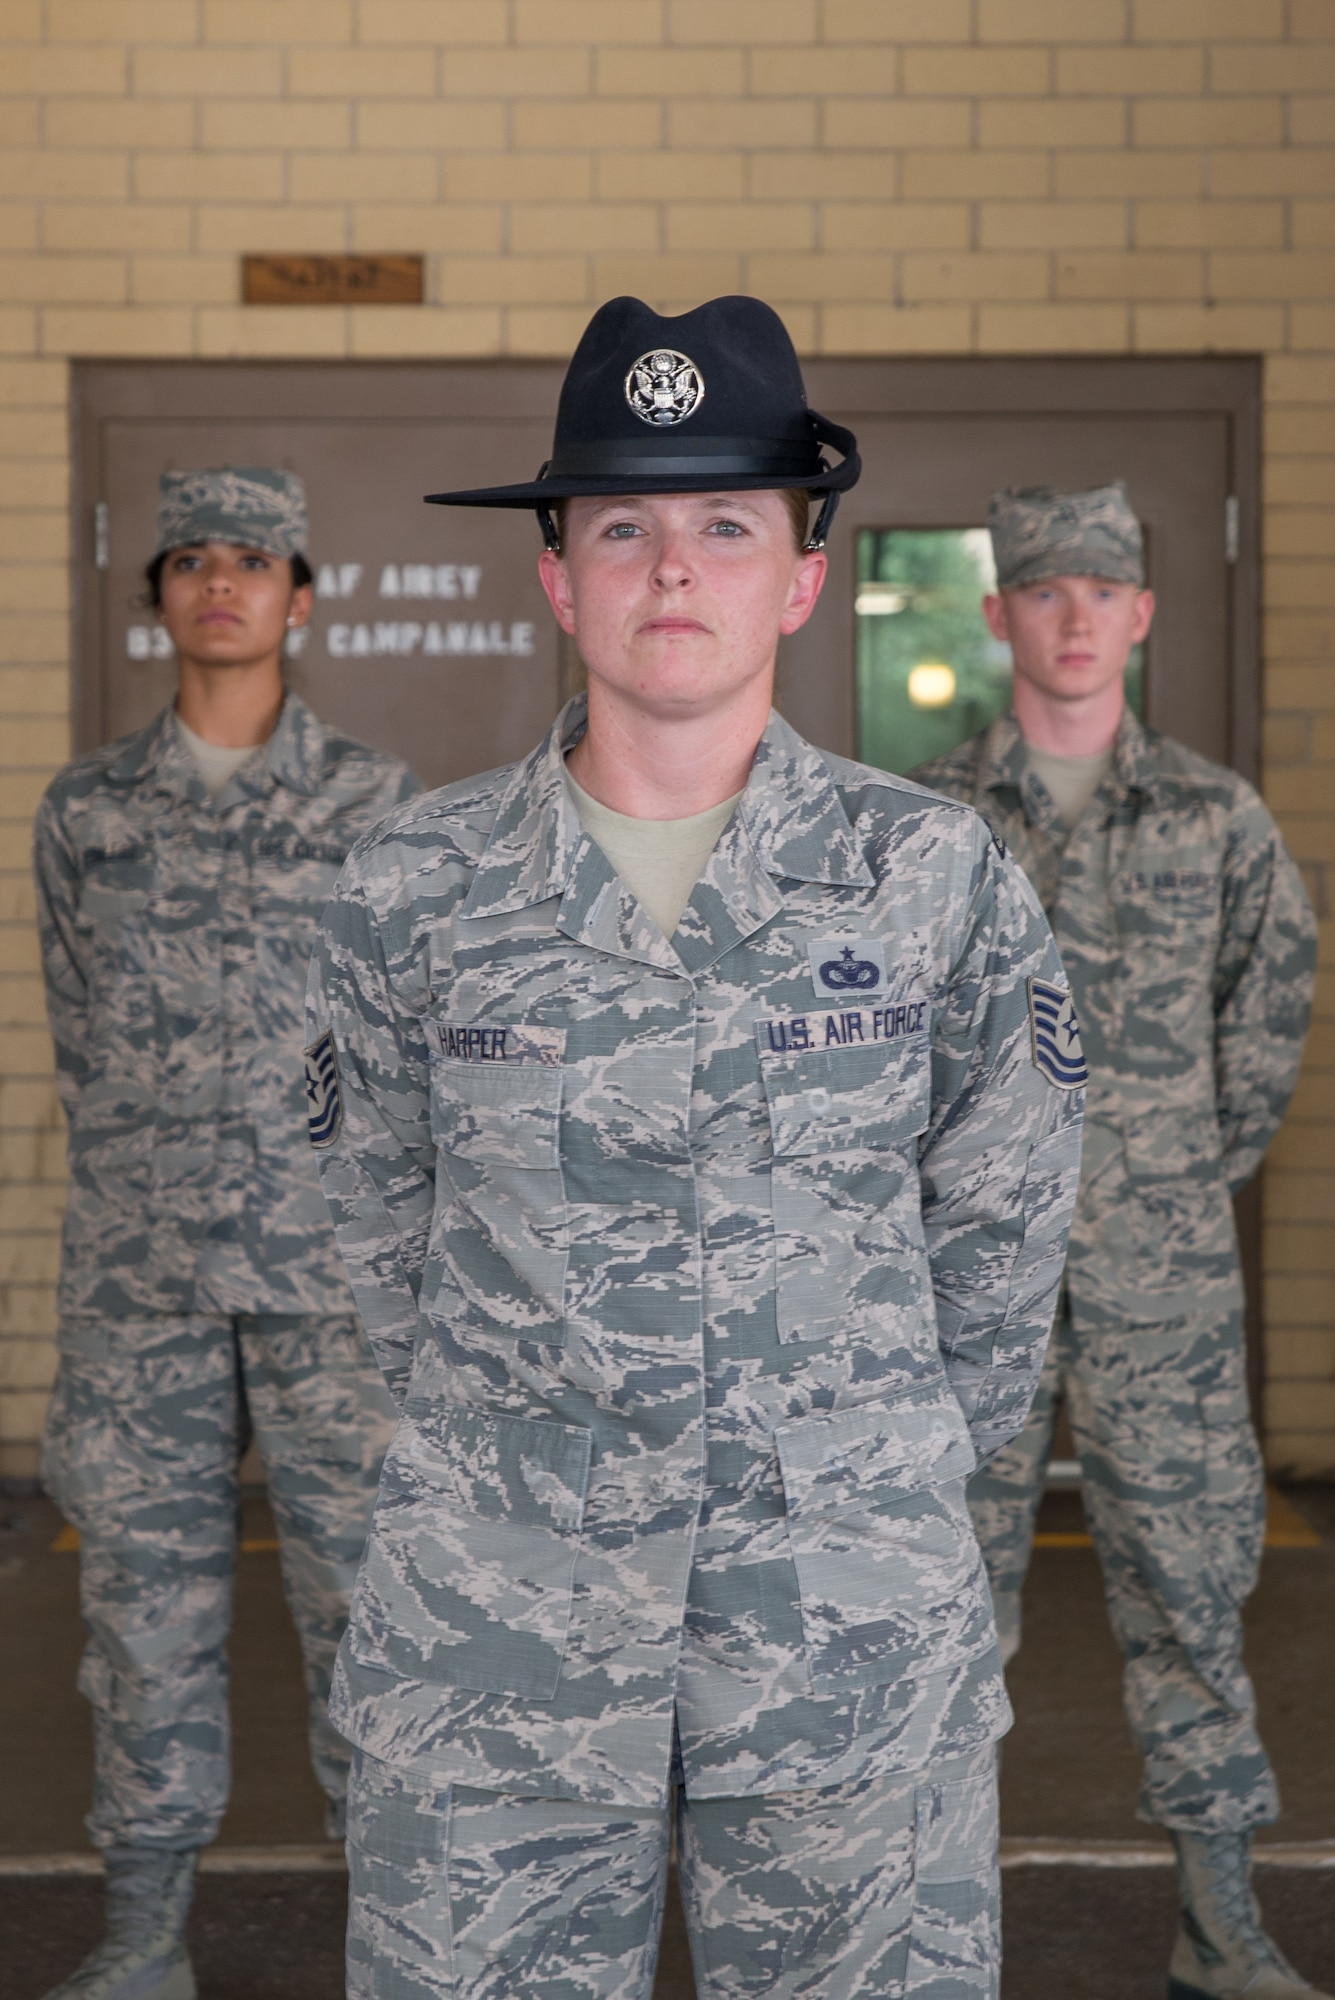 Tech. Sgt. Megan Harper, A 326th Training Squadron military training instructor facilitator, stands with Airmen's week Airmen at the 326th TRS, at Joint Base San Antonio-Lackland June 28, 2017. Harper has been selected as the Military Times' 2017 Airman of the Year for her exceptional service over the course of a 15-year Air Force career.